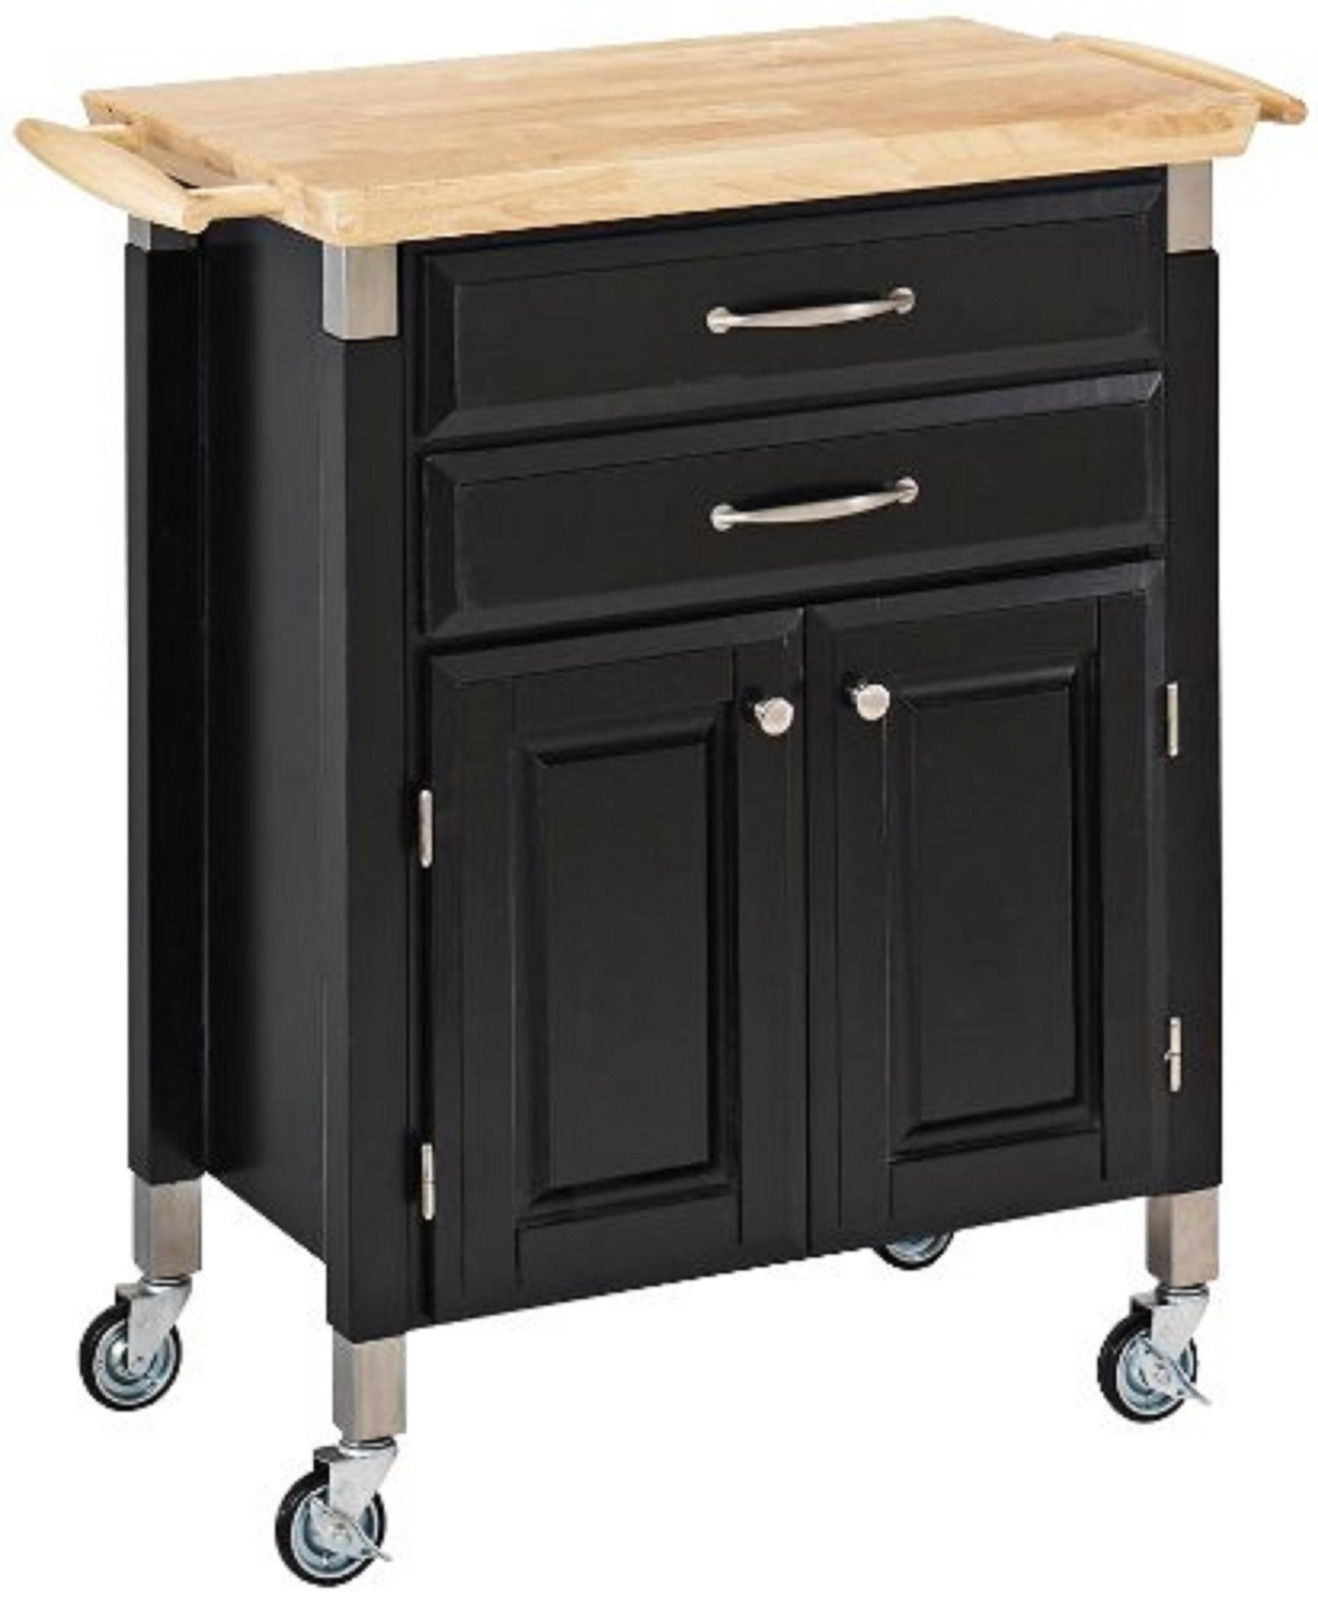 amazon kitchen cart small chairs serving food prep station patio deck outdoor